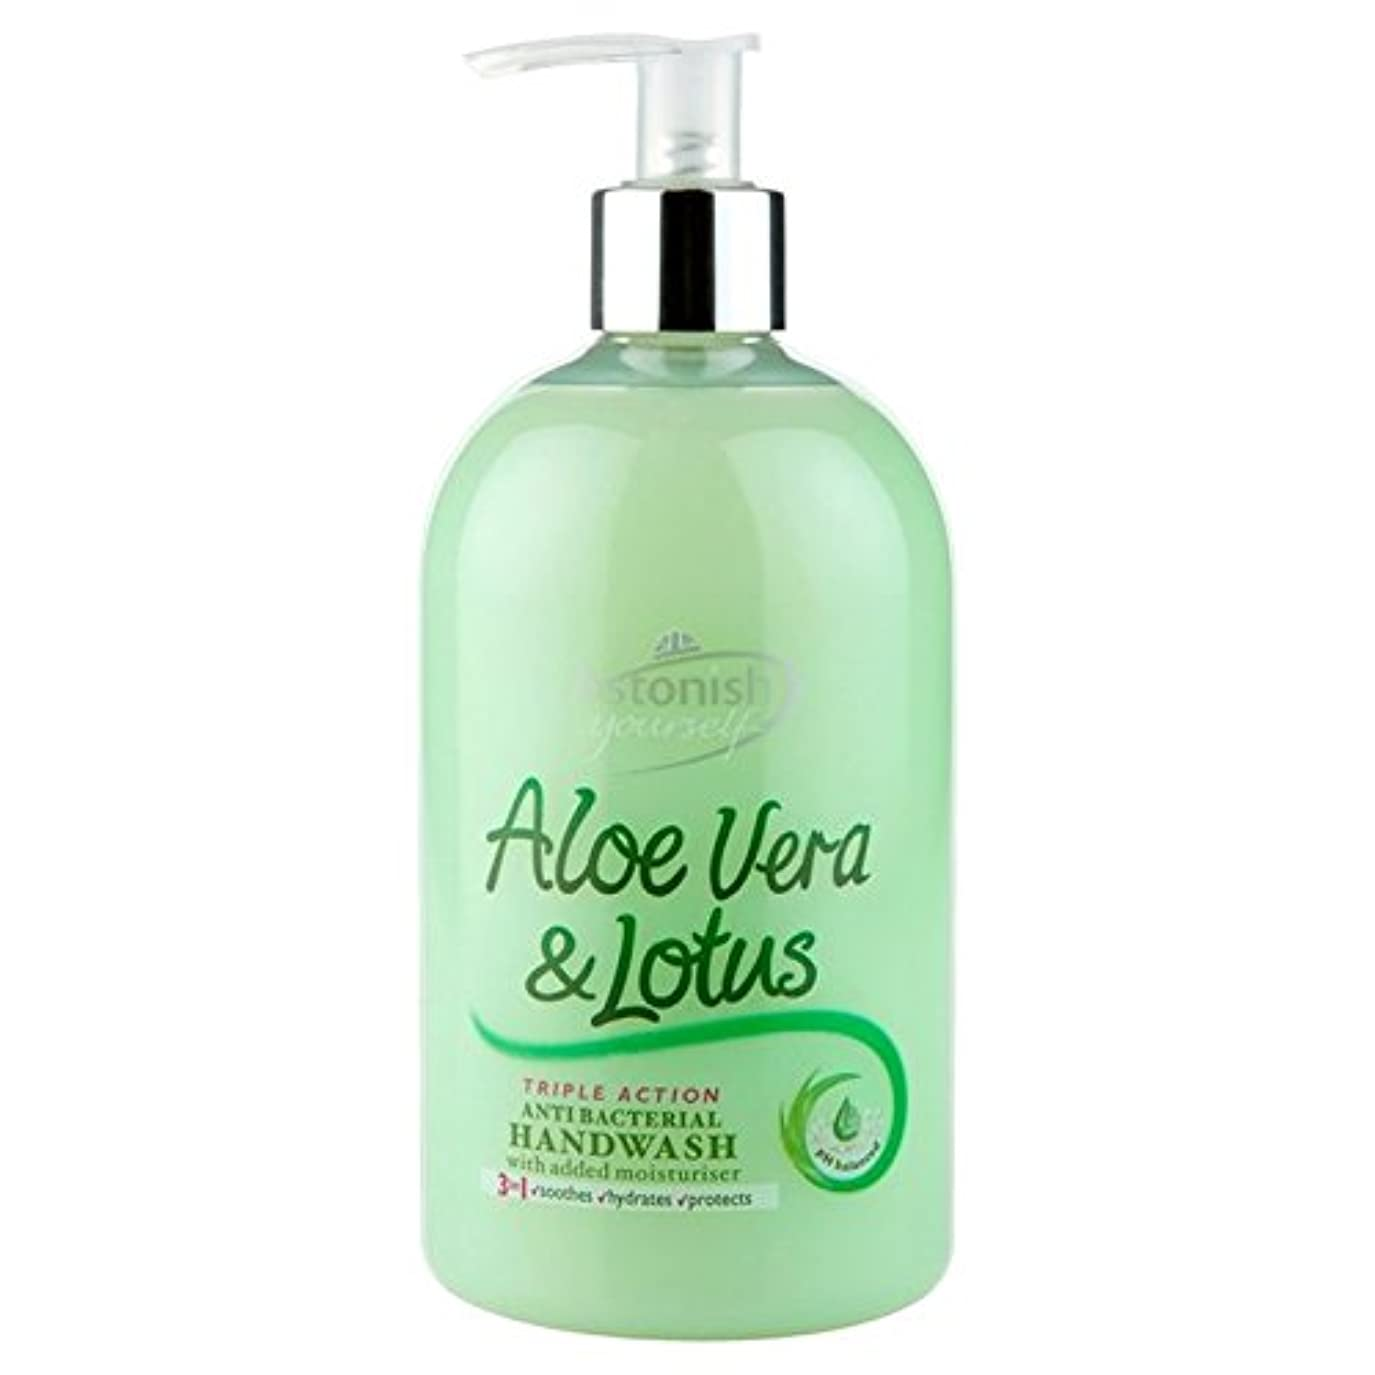 Astonish Aloe Vera & Lotus Anti Bacterial Hand Wash 500ml (Pack of 6) - (Astonish) アロエベラ&蓮抗細菌手洗いの500ミリリットル (x6...